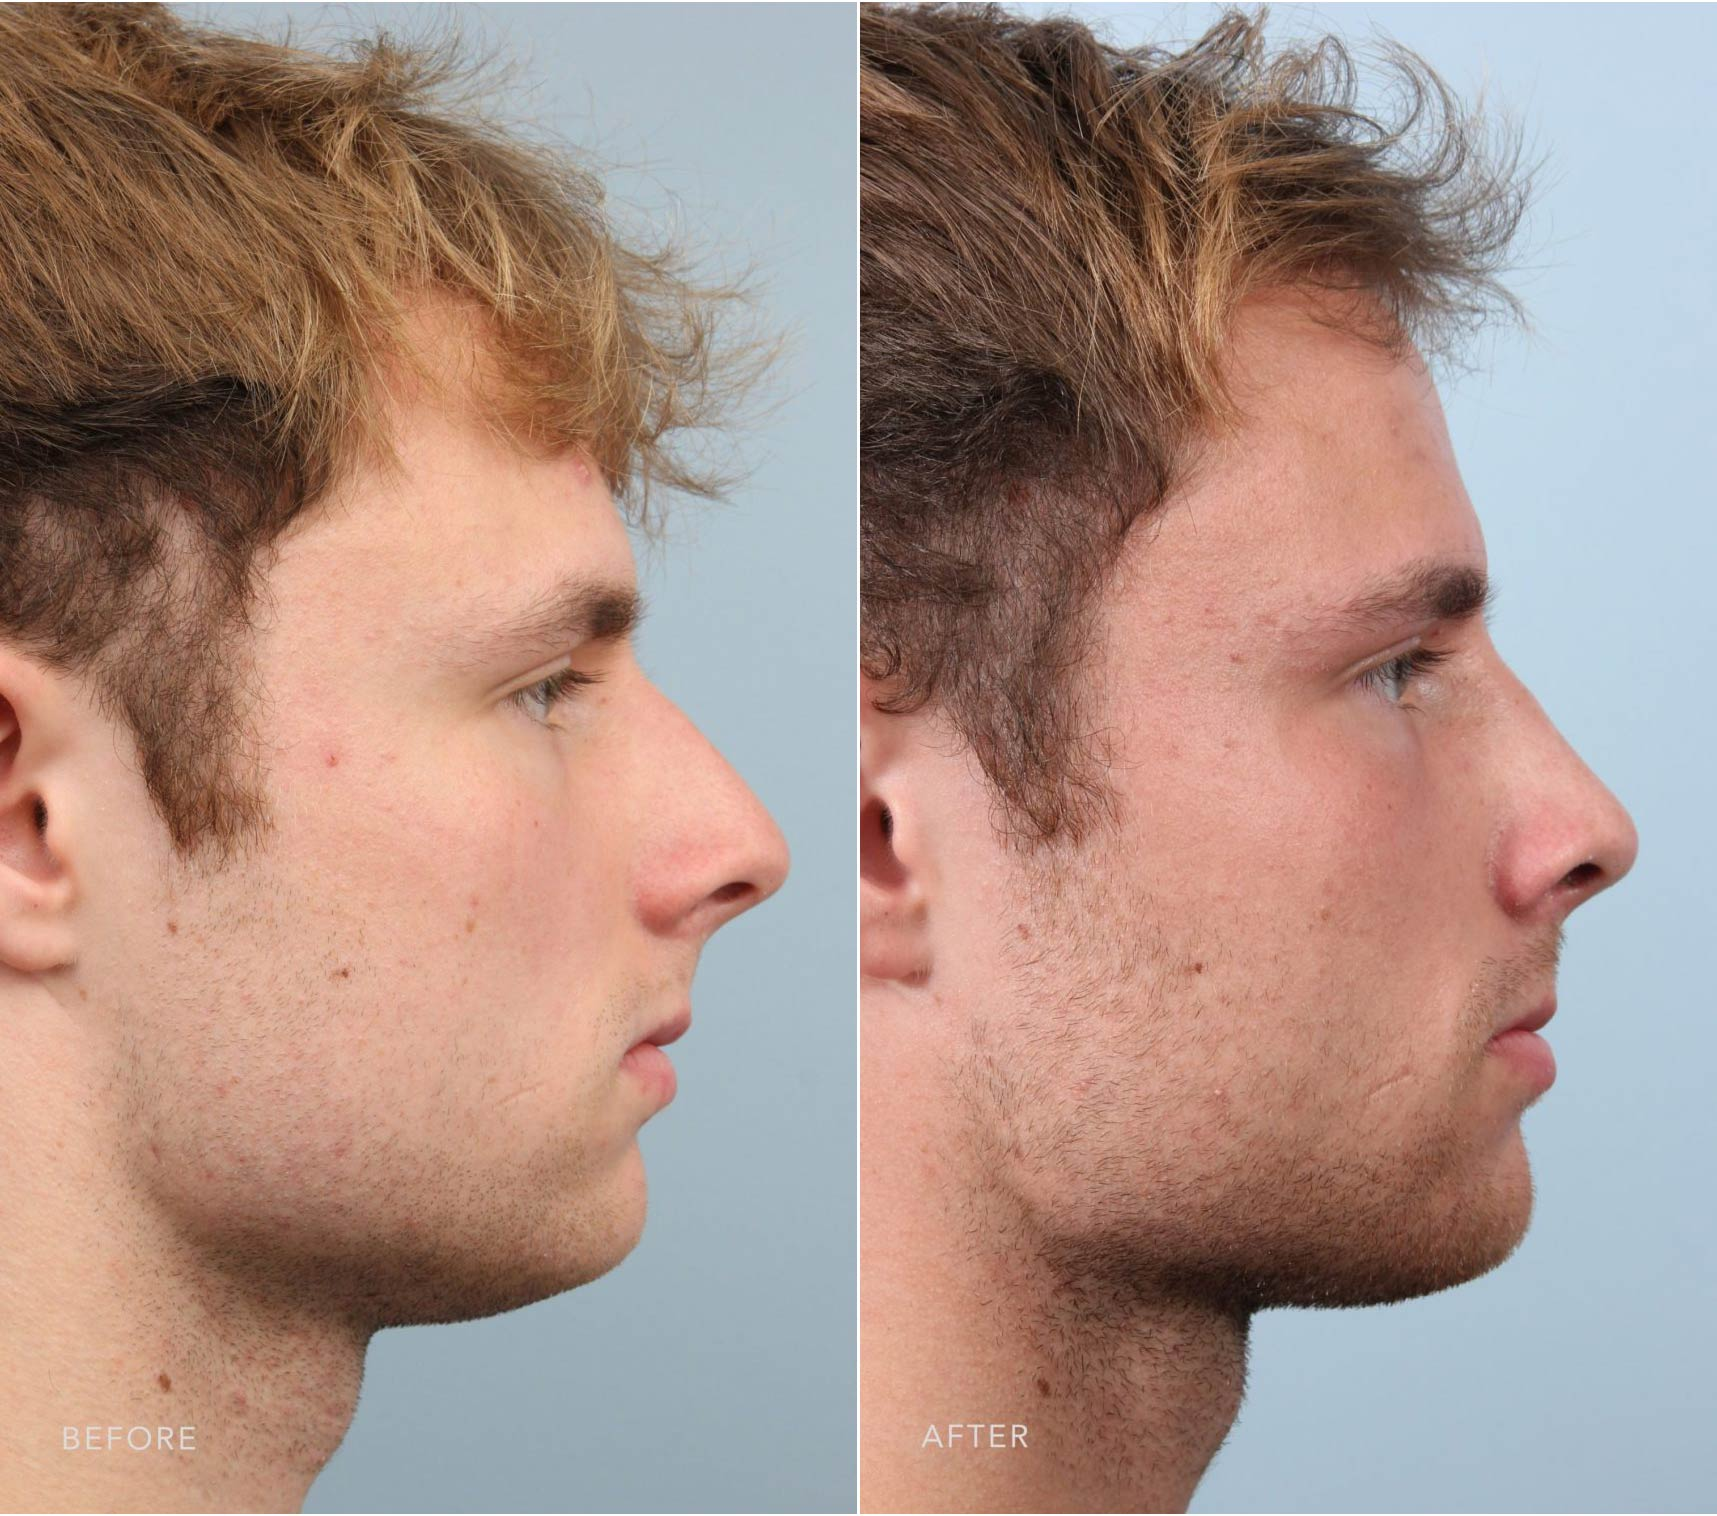 Closeup of a male patient before and after having rhinoplasty plastic surgery to remedy an oversized nose